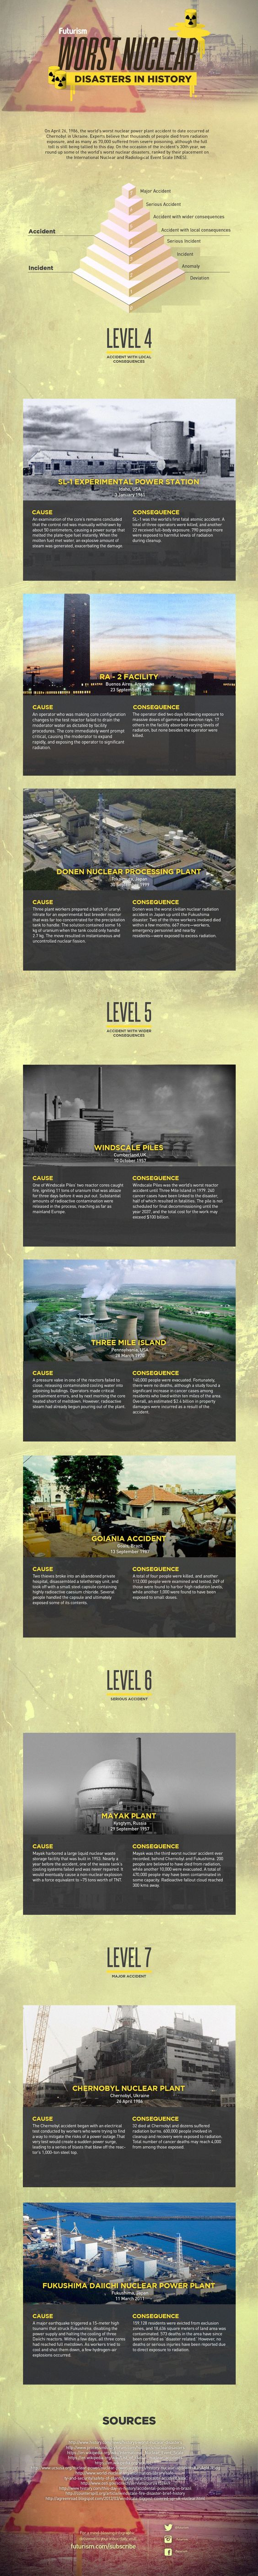 nuclear disasters history infographic